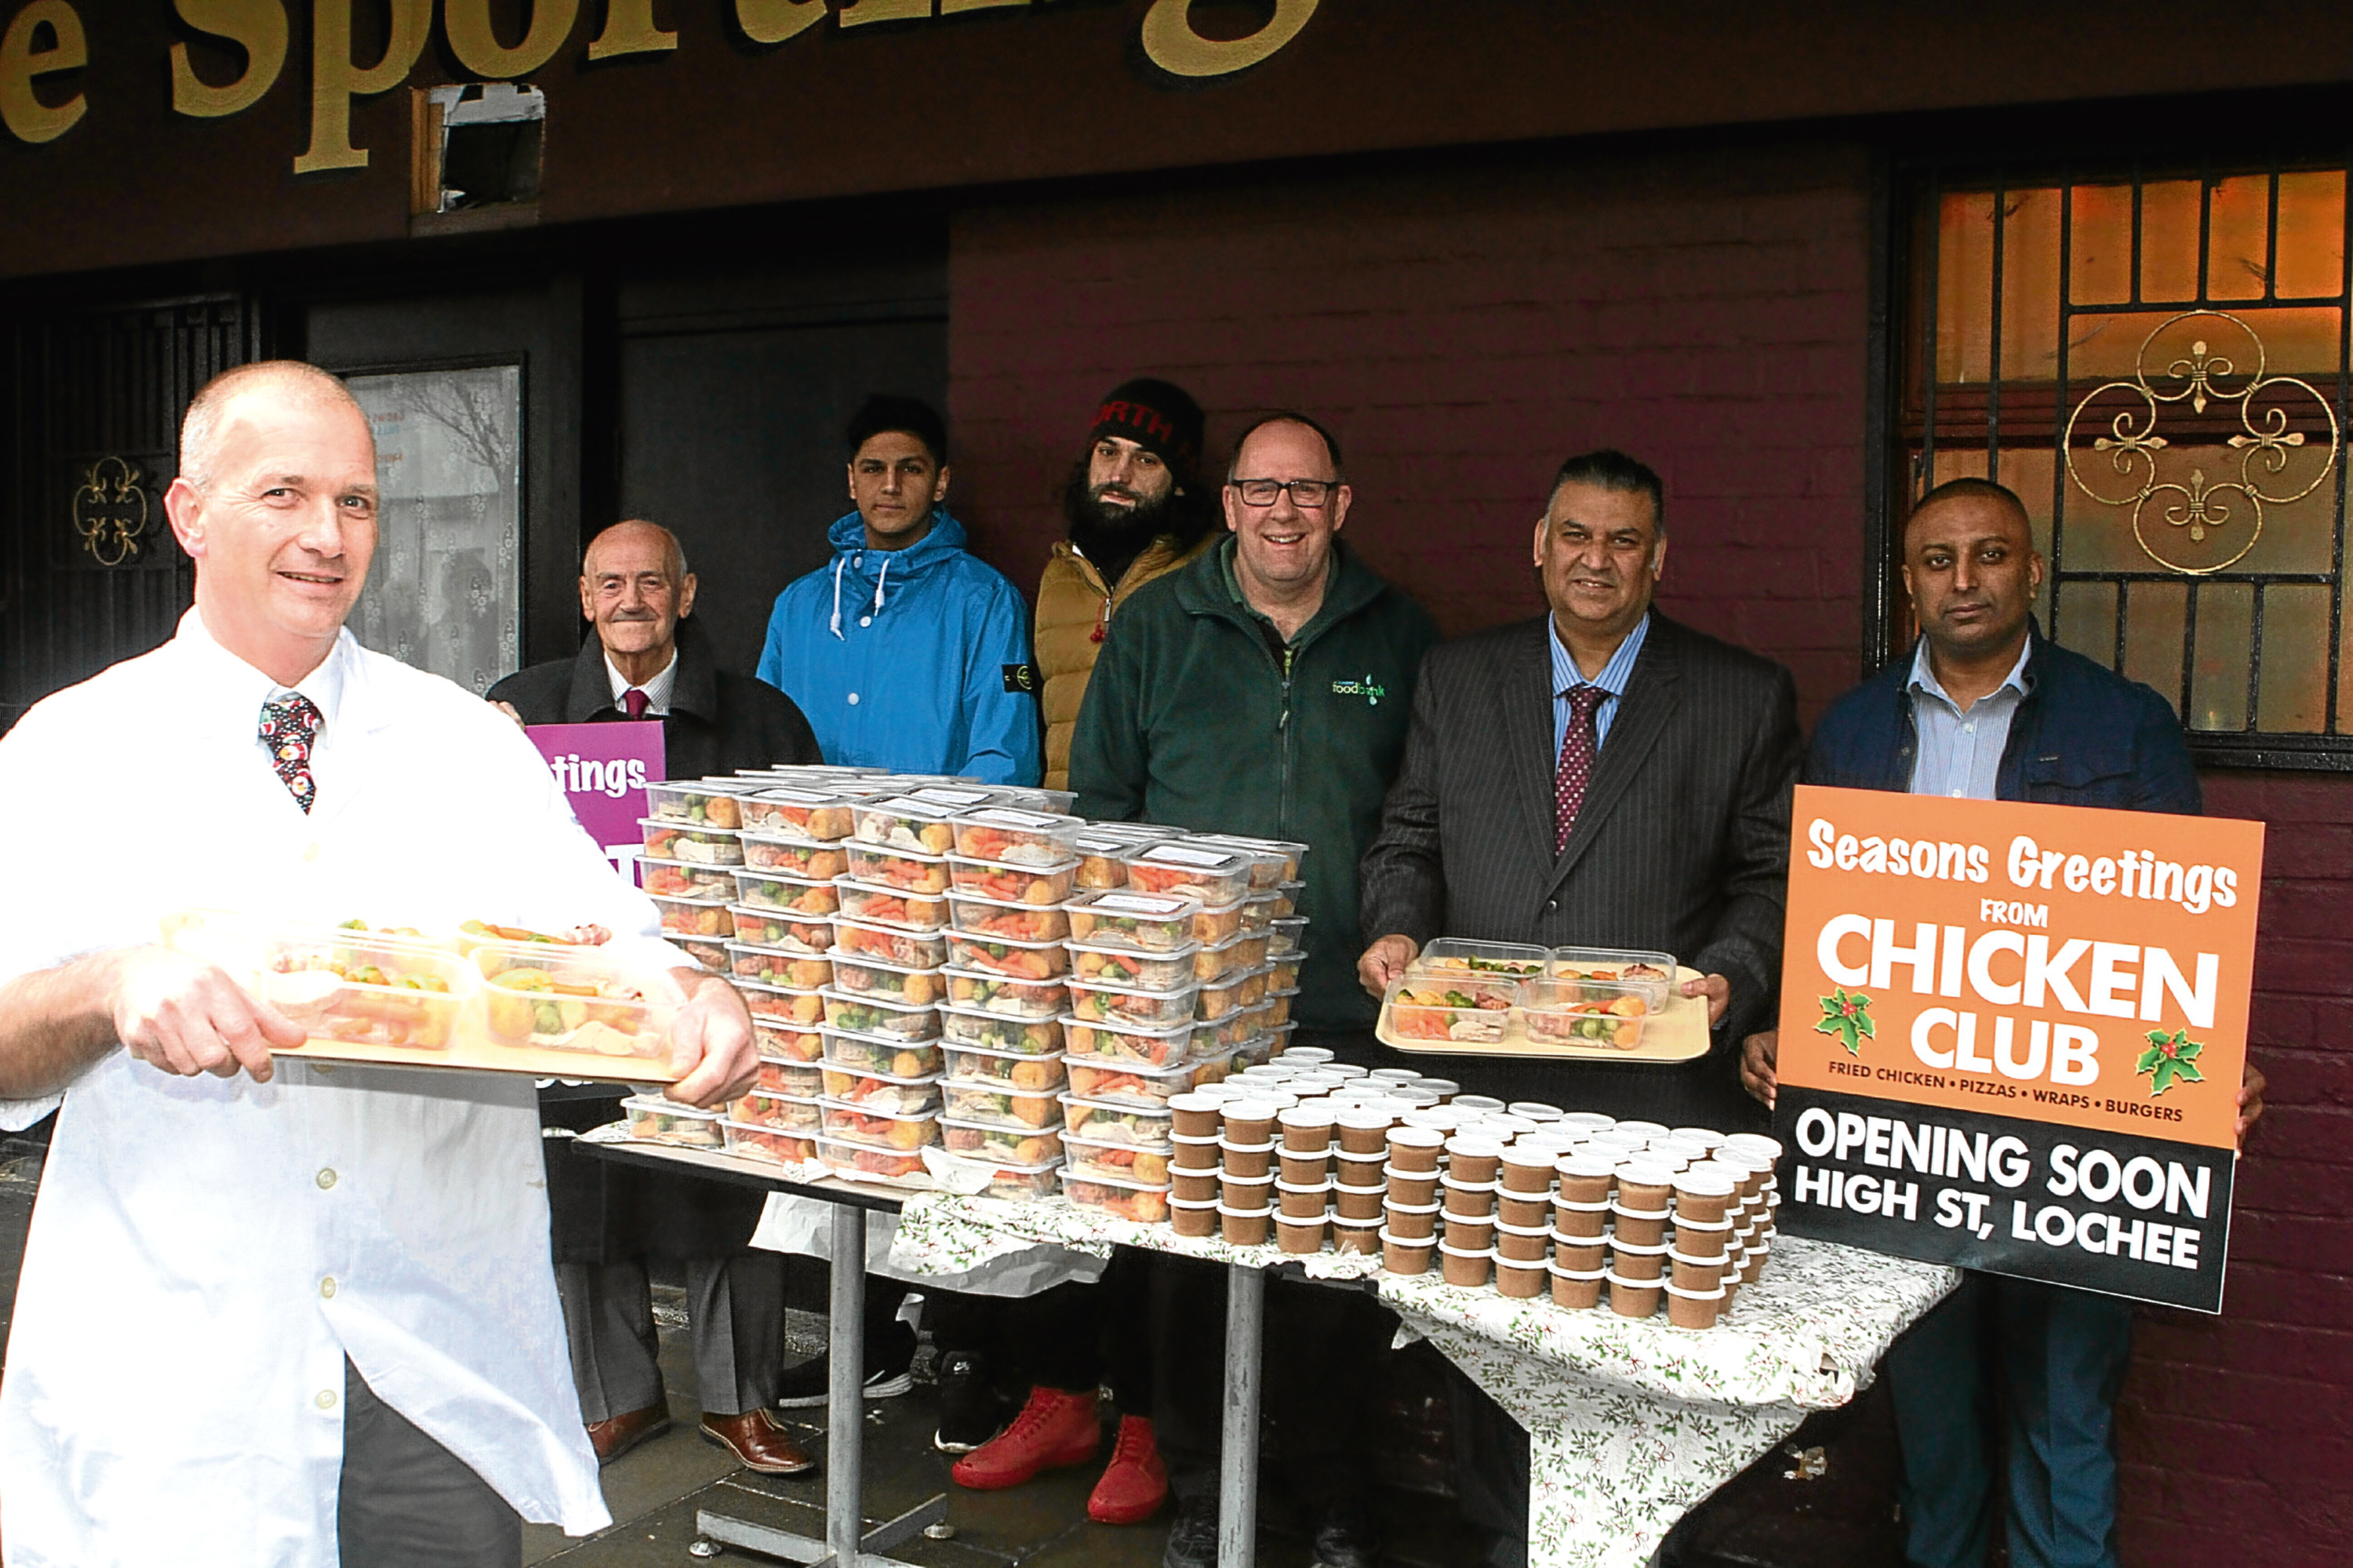 Pictured from left to right are George Jarron of Scott Brothers, Councillor Tom Ferguson, Usman Nasim, John Redmond, Ken Linton of Dundee Foodbank and Ibrar Ibrahim of Chicken Club.